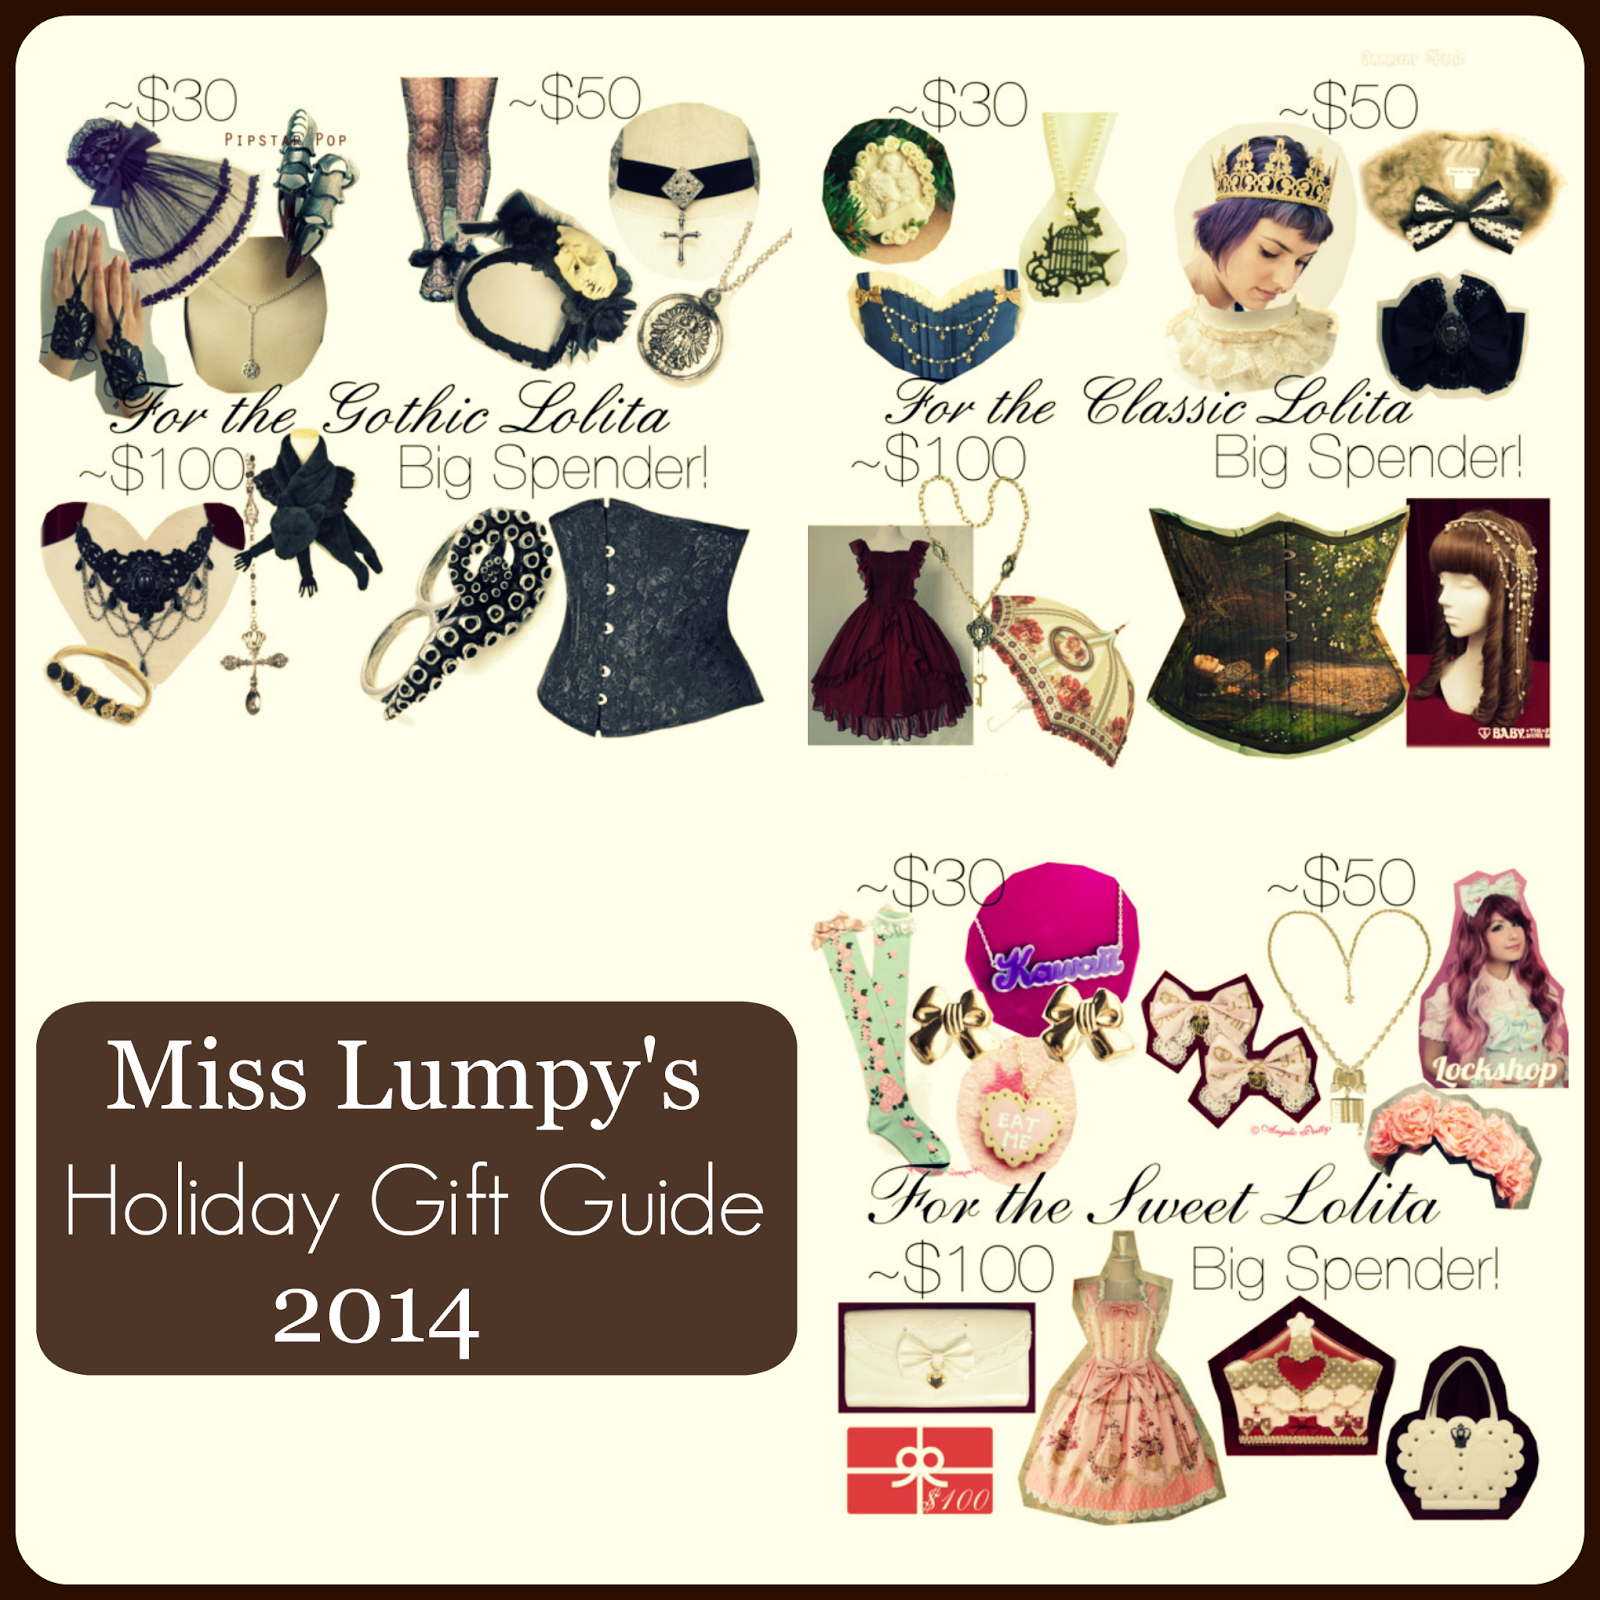 Compilation of gift guide images for classic, gothic, and sweet lolita fashion